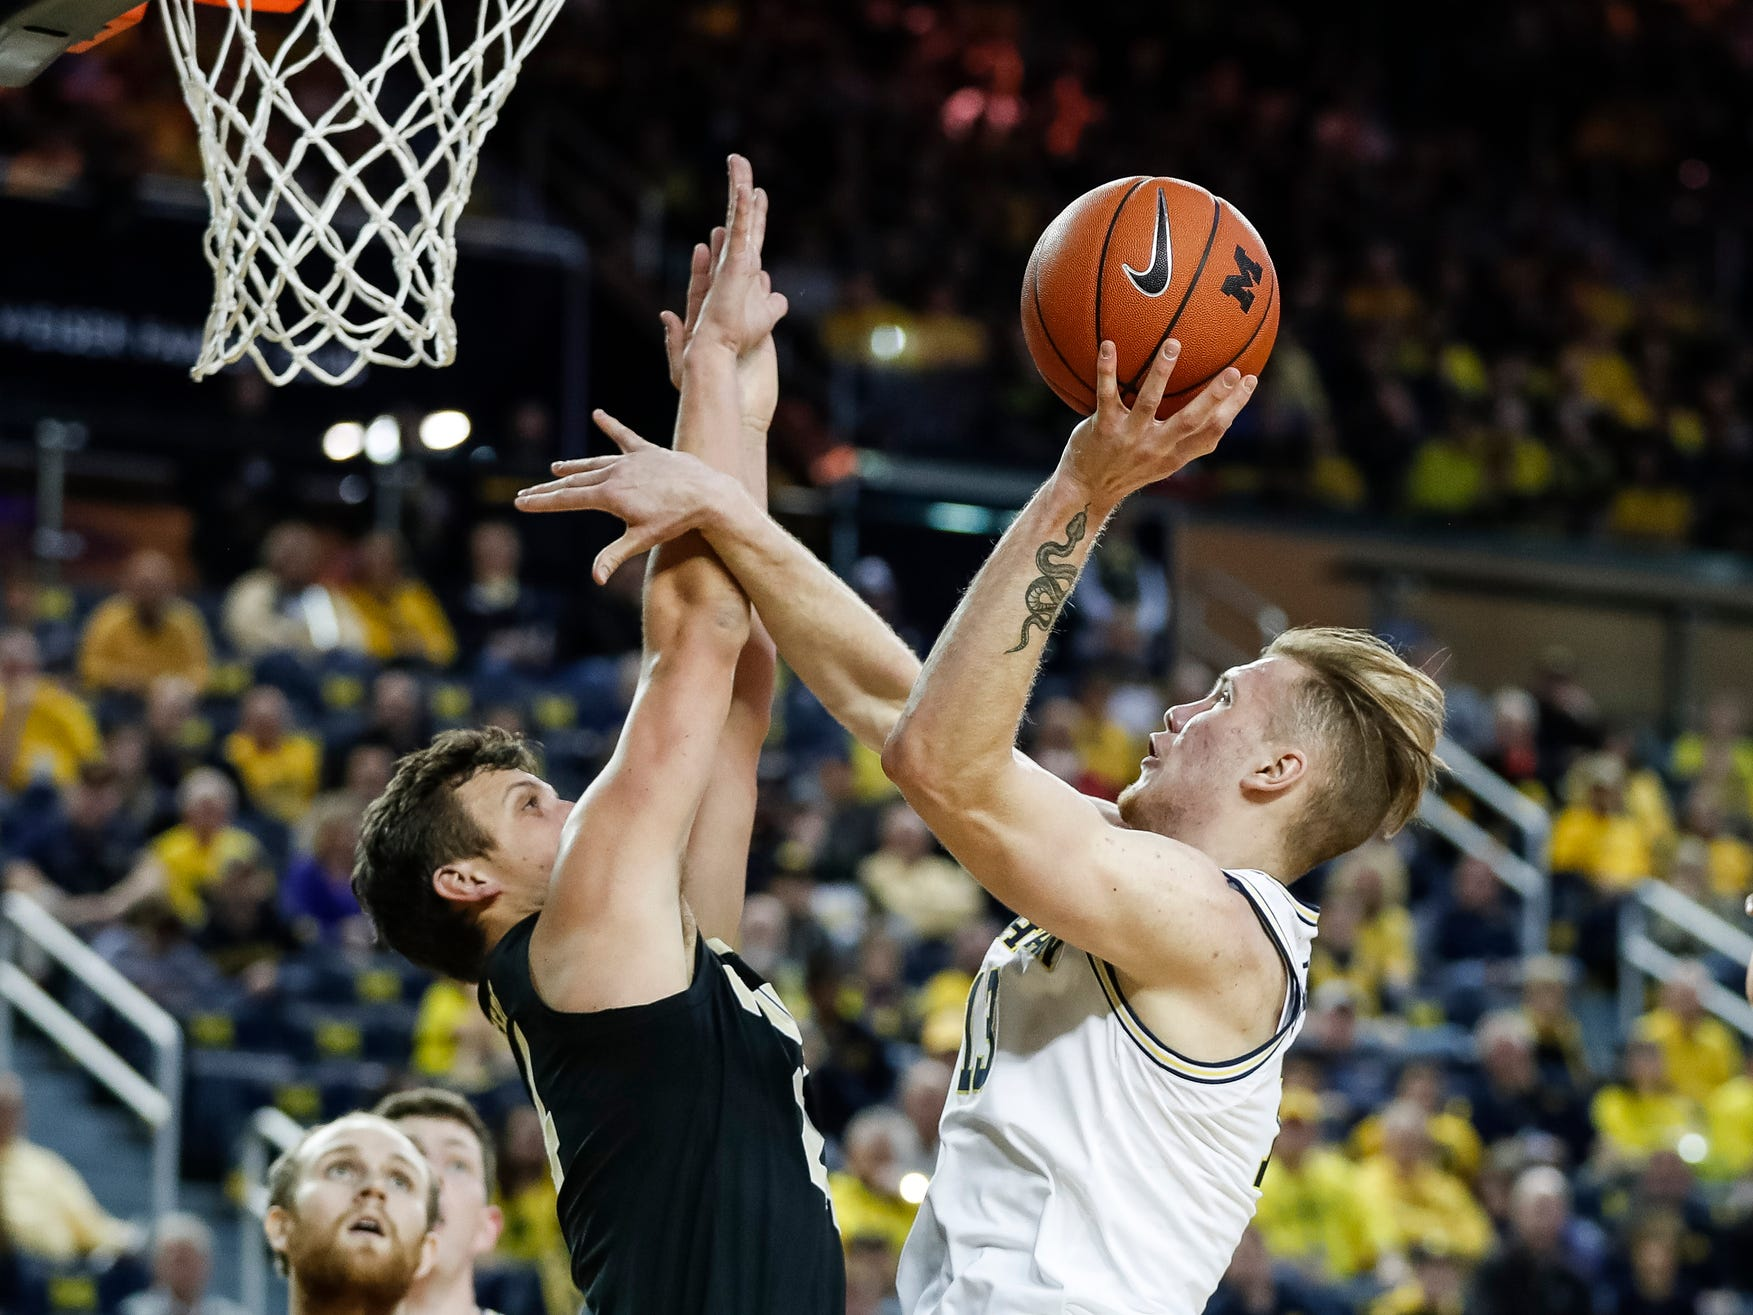 Michigan forward Ignas Brazdeikis (13) goes for the basket against Purdue forward Grady Eifert (24) during the first half at Crisler Center on Saturday, Dec. 1, 2018.